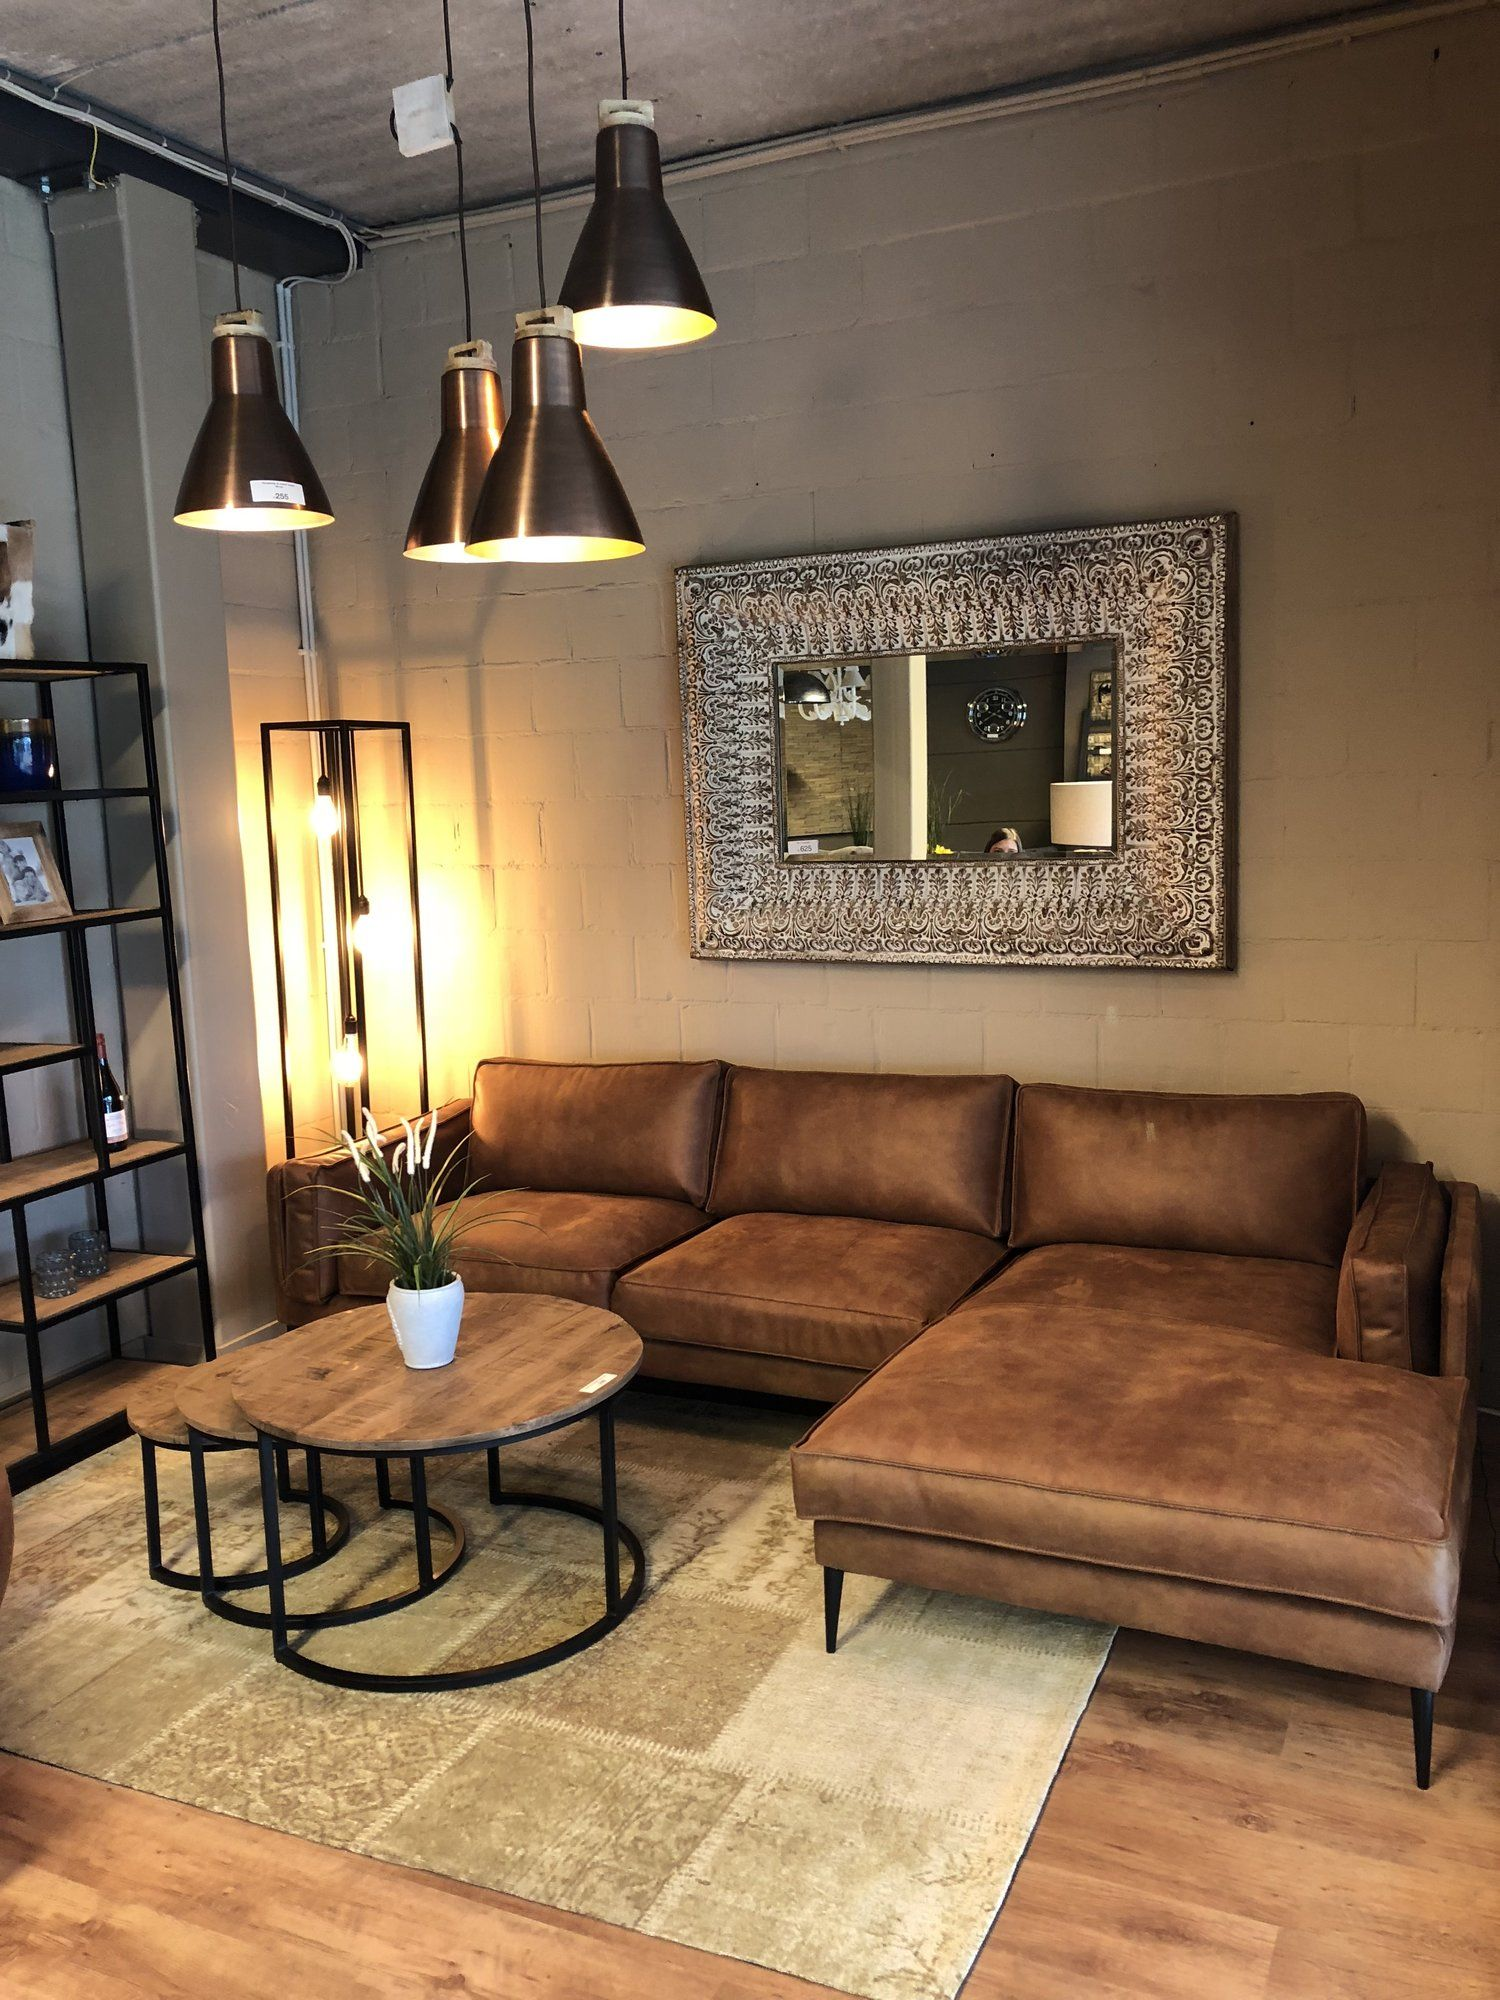 Awe Inspiring Q Aston 1349 Man Cave In 2019 Brown Leather Couch Ibusinesslaw Wood Chair Design Ideas Ibusinesslaworg